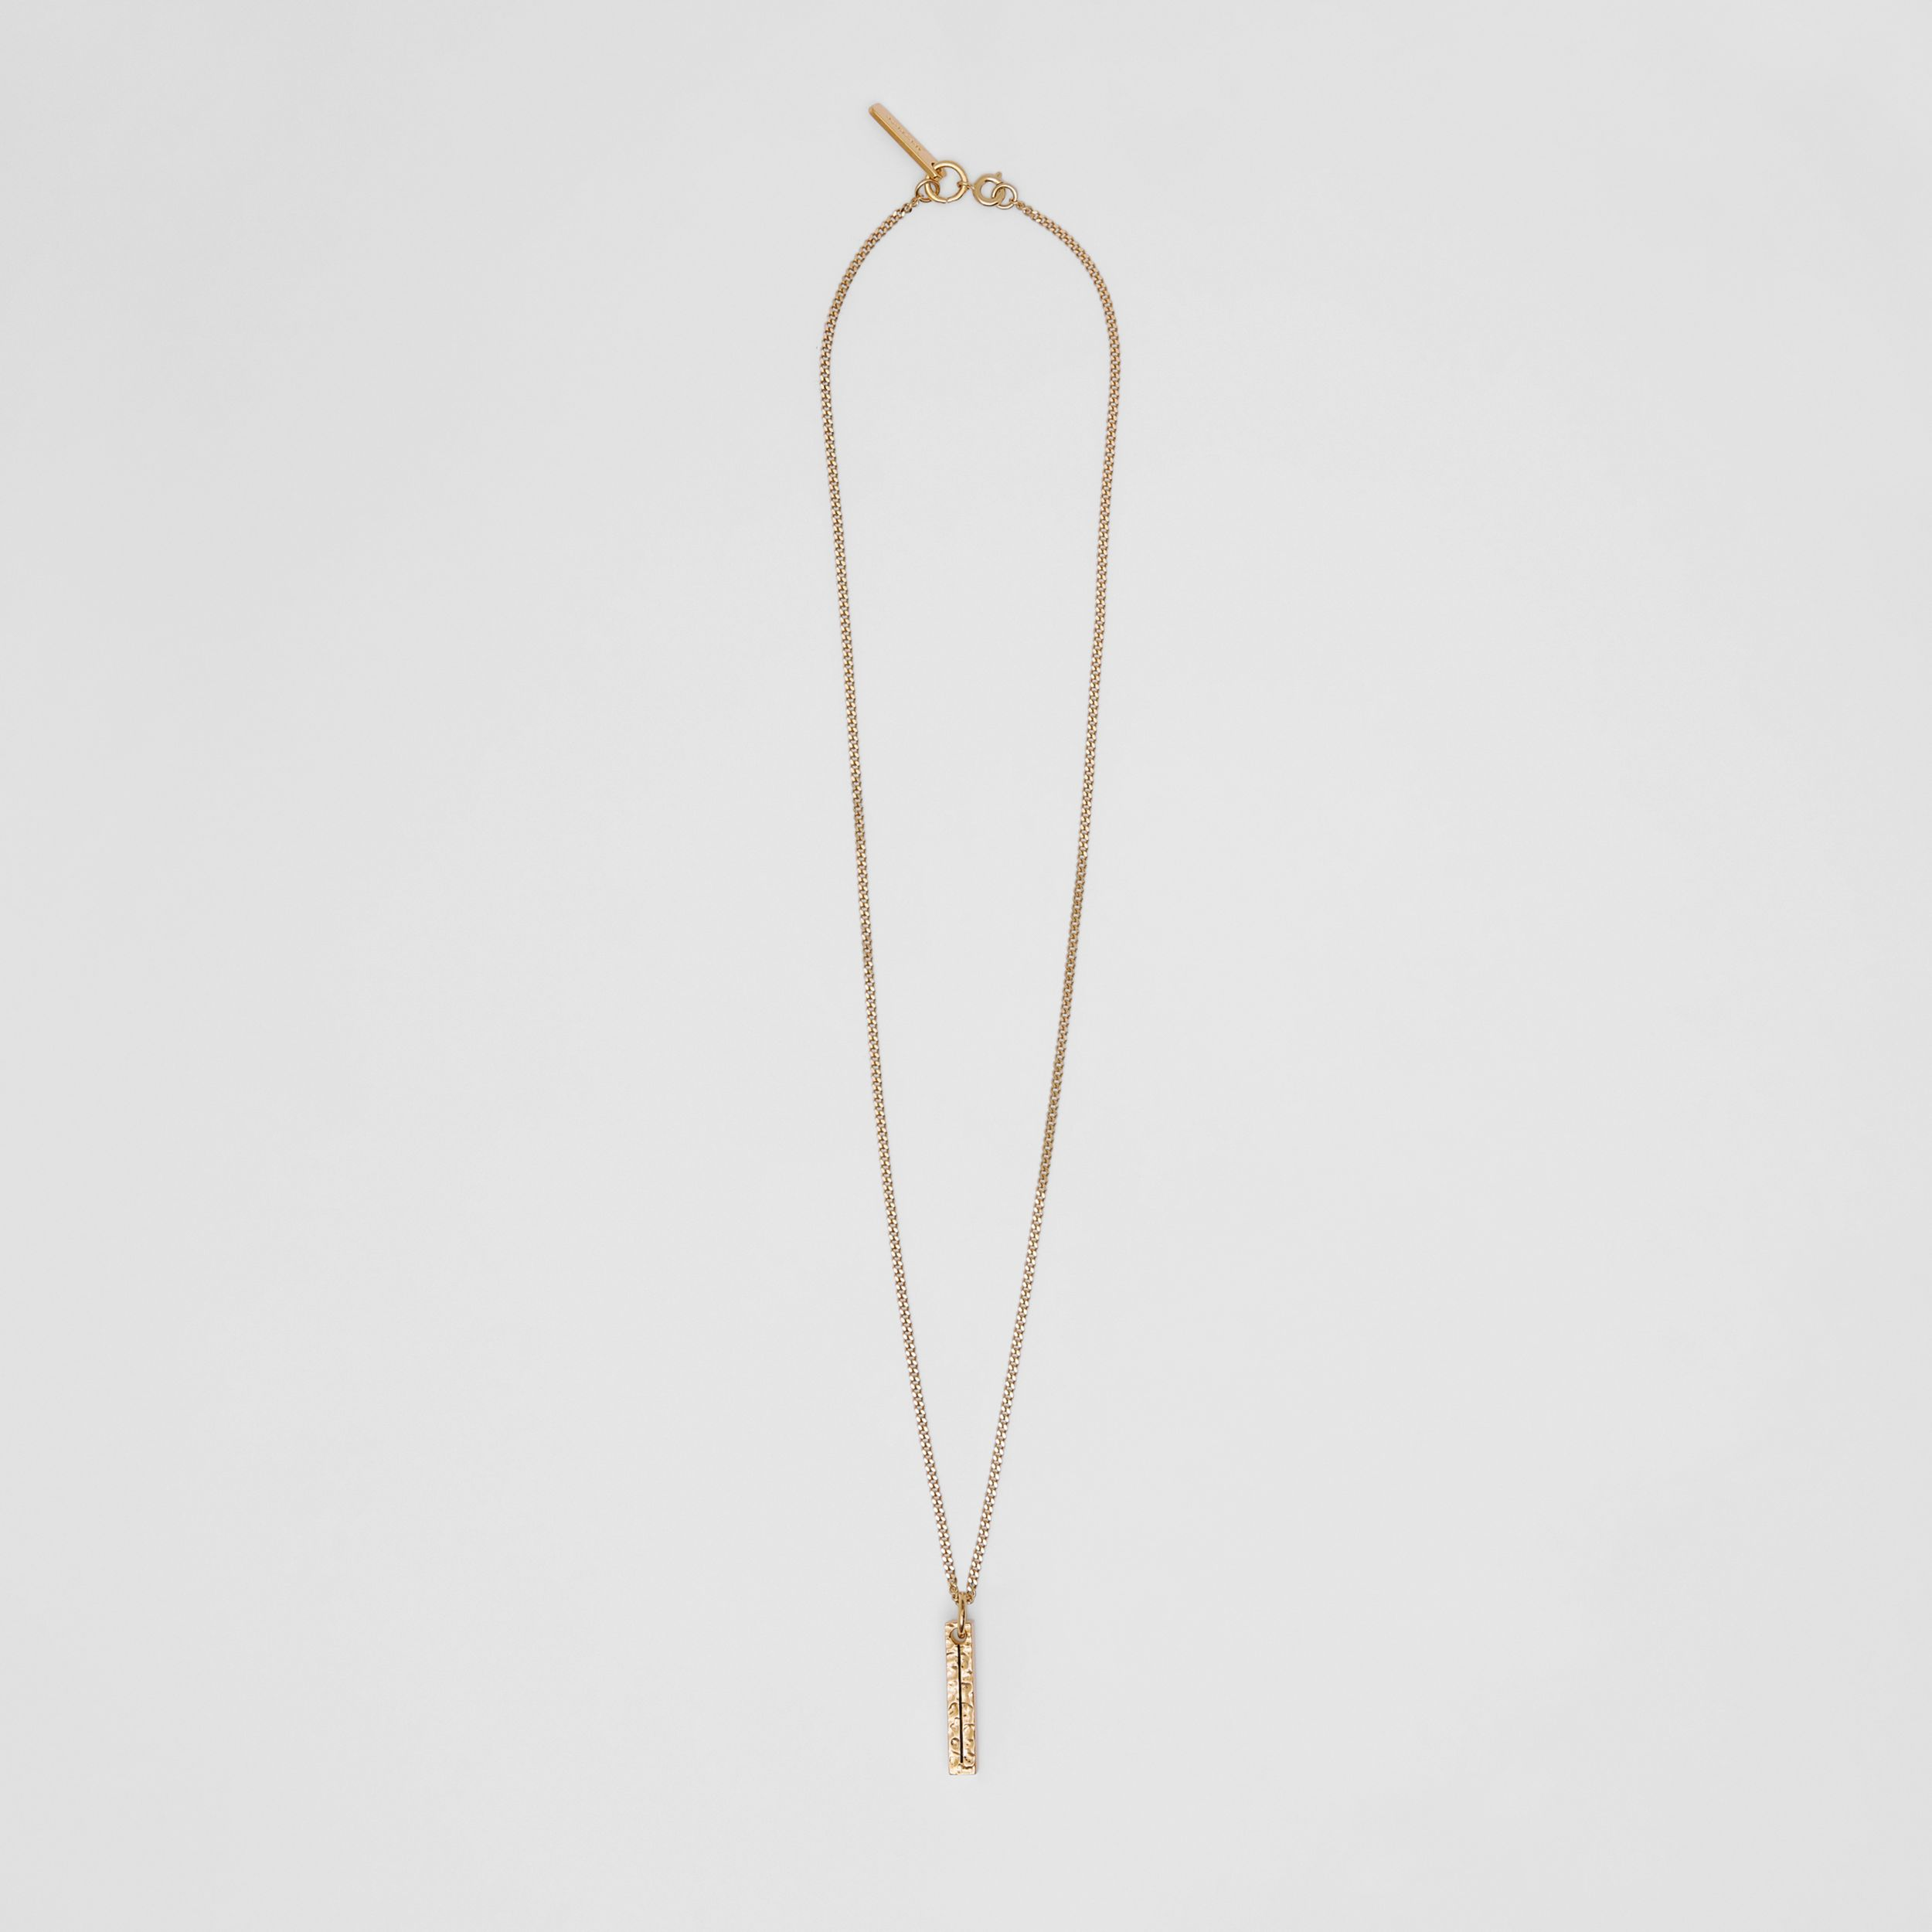 'I' Alphabet Charm Gold-plated Necklace in Light - Women | Burberry Canada - 1